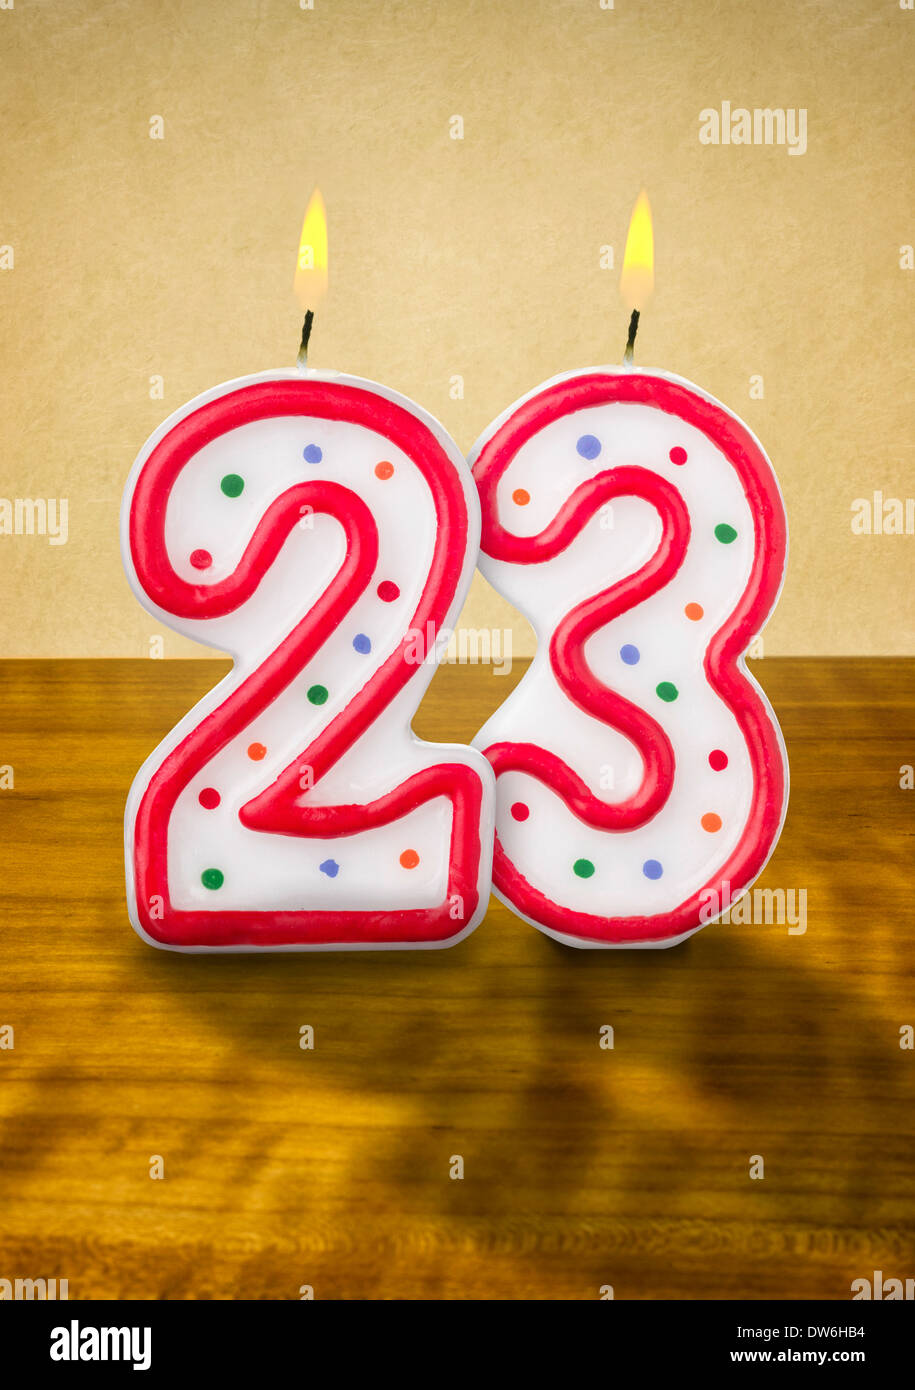 What are the Chances at least 2 people out of 23 People in a Room Have the Same Birthday?